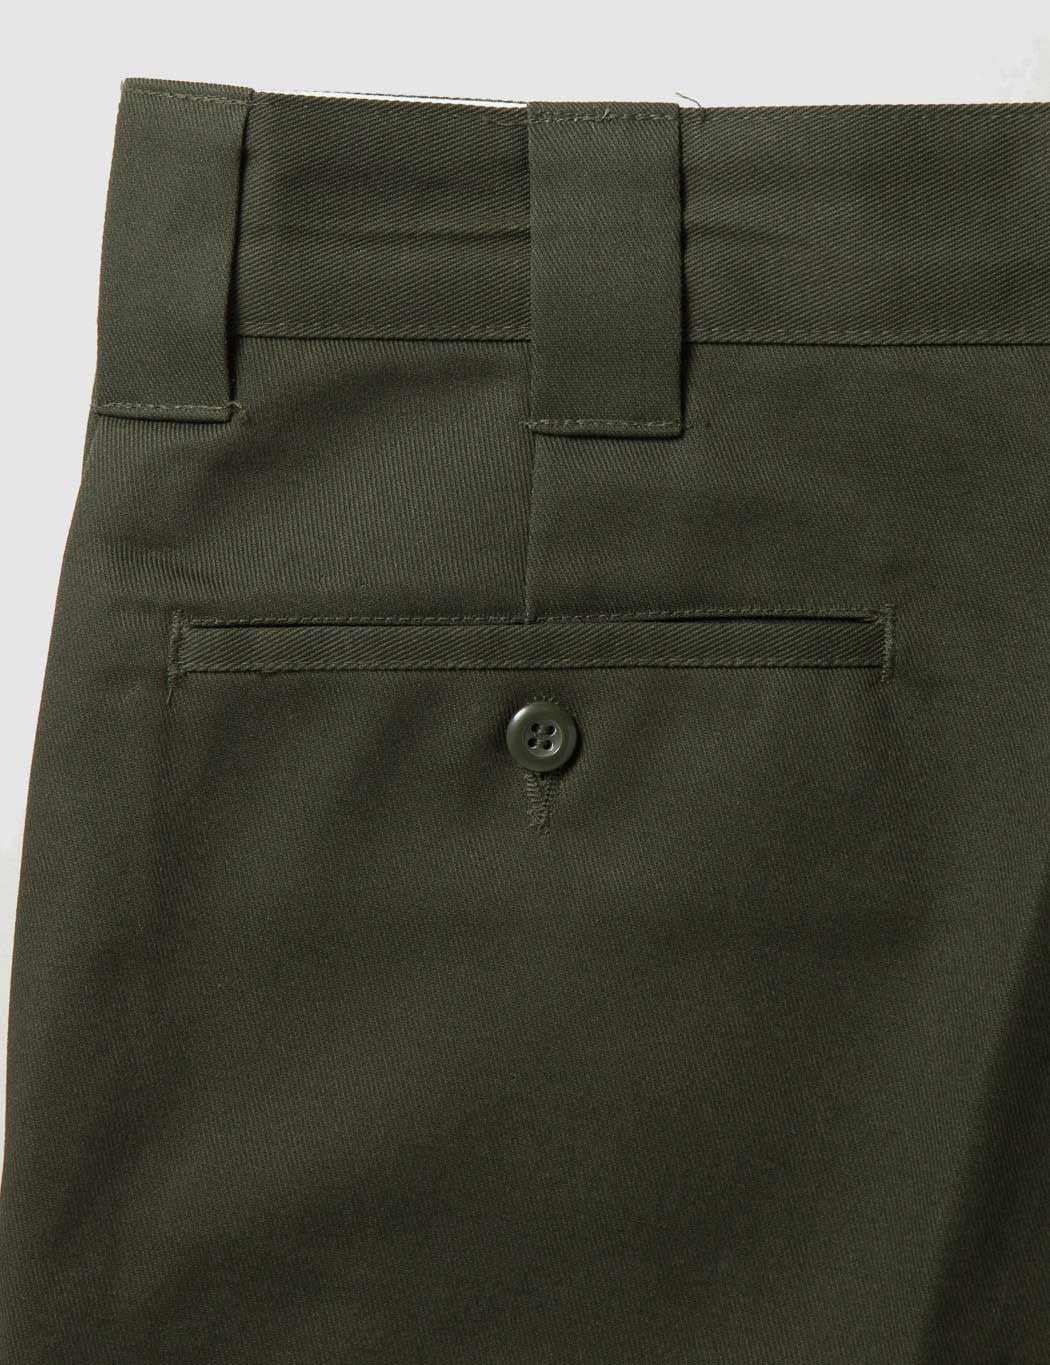 Dickies 873 Slim Straight Work Pant - Olive